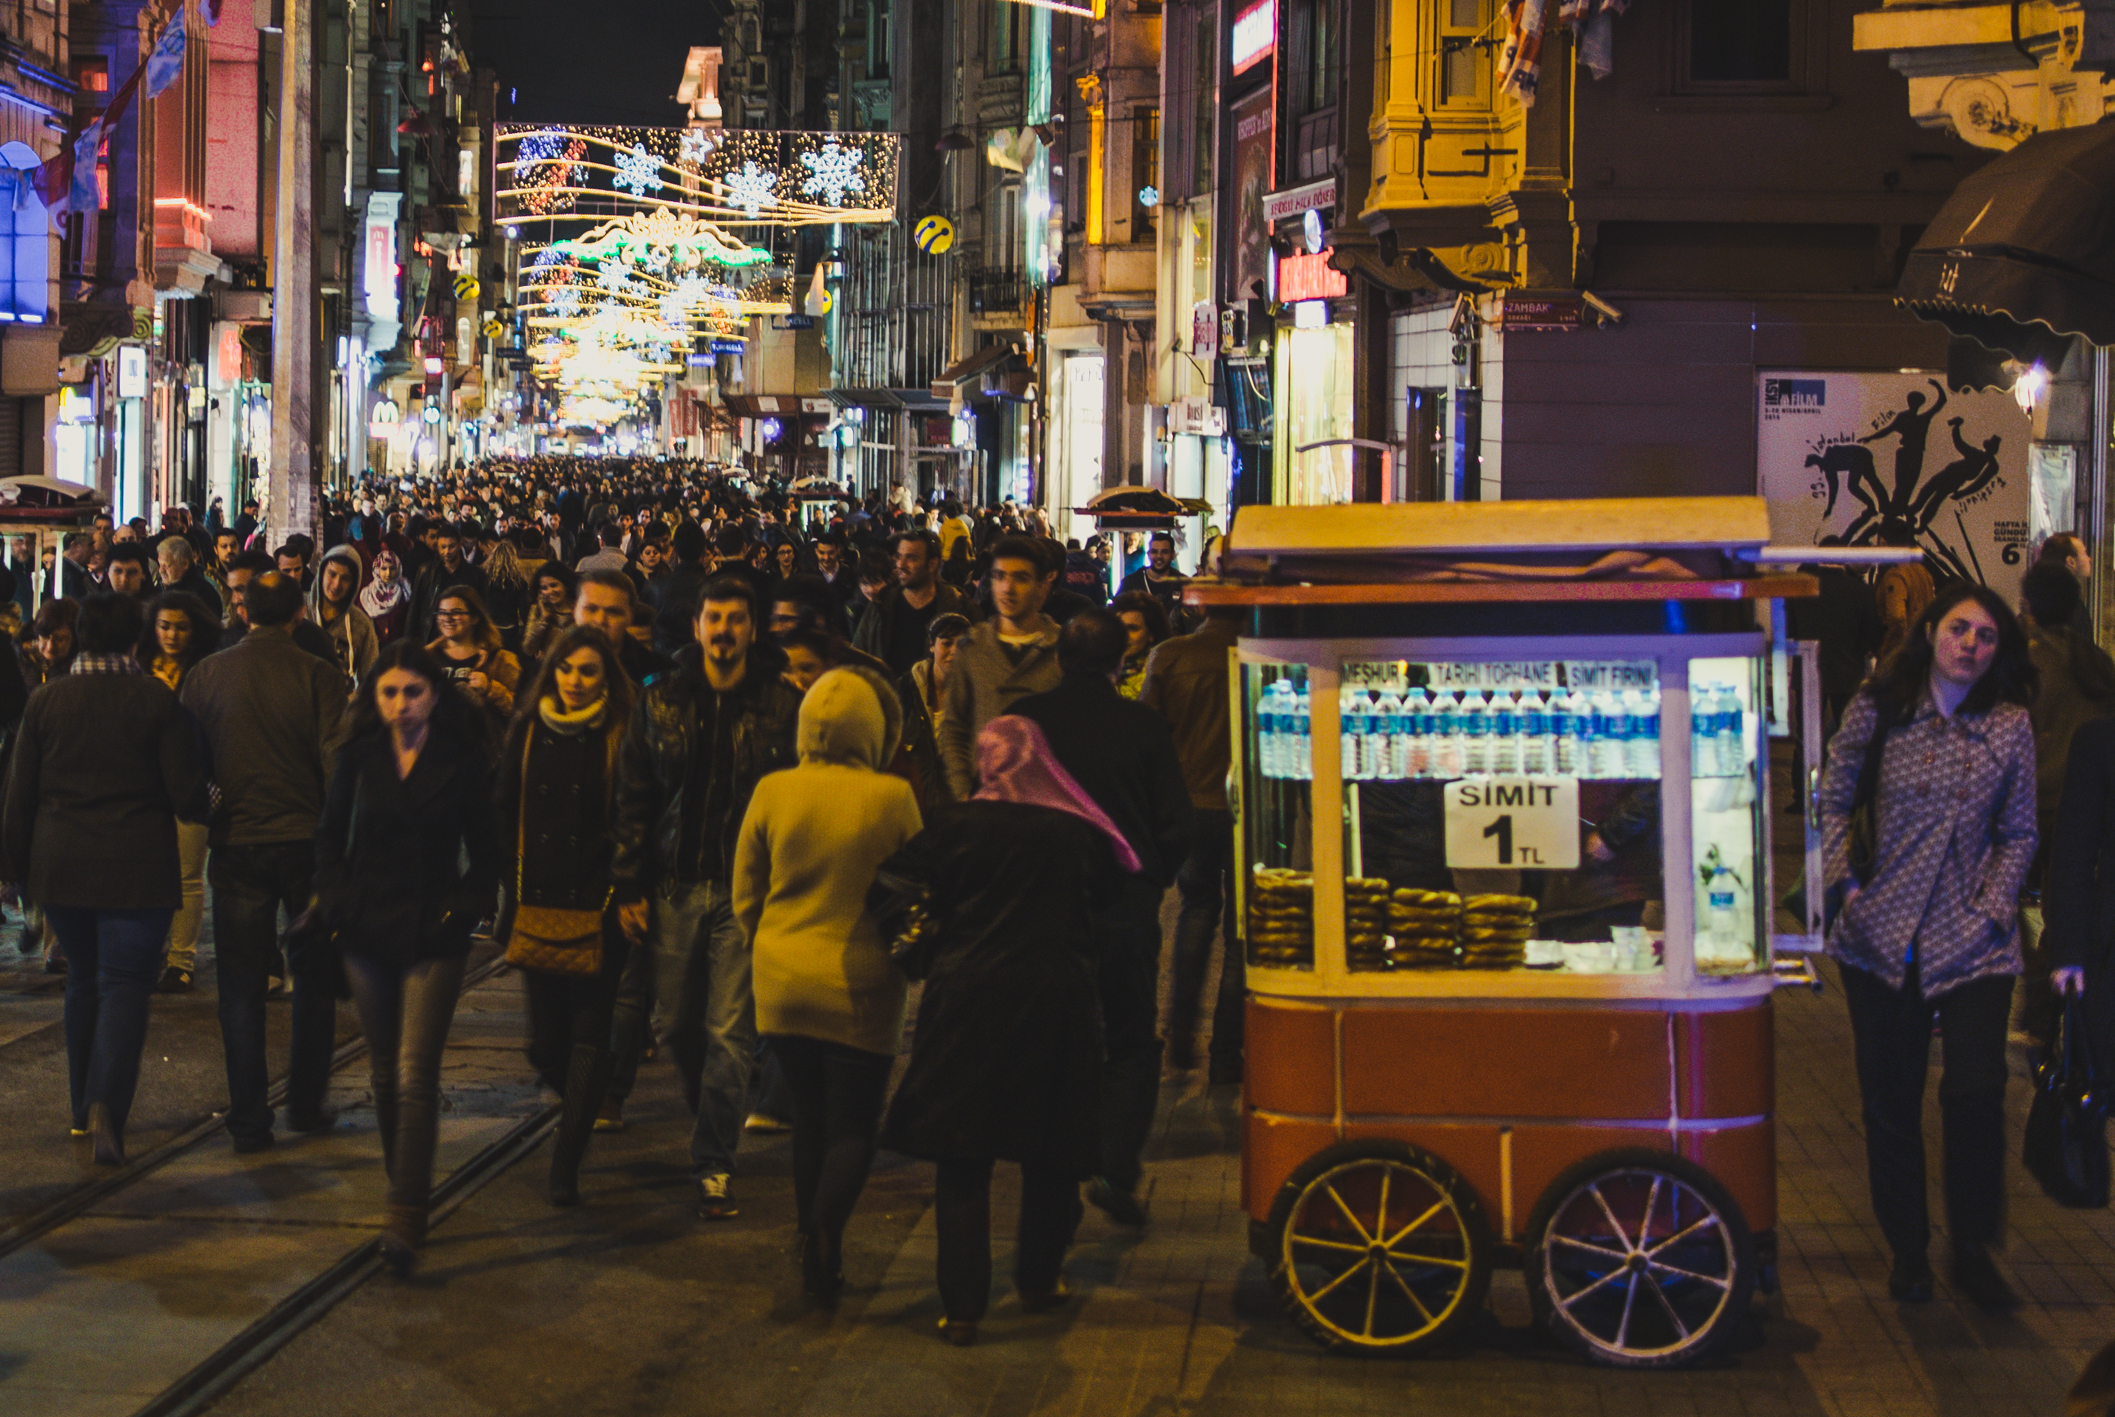 Simitstand in der İstiklal Caddesi